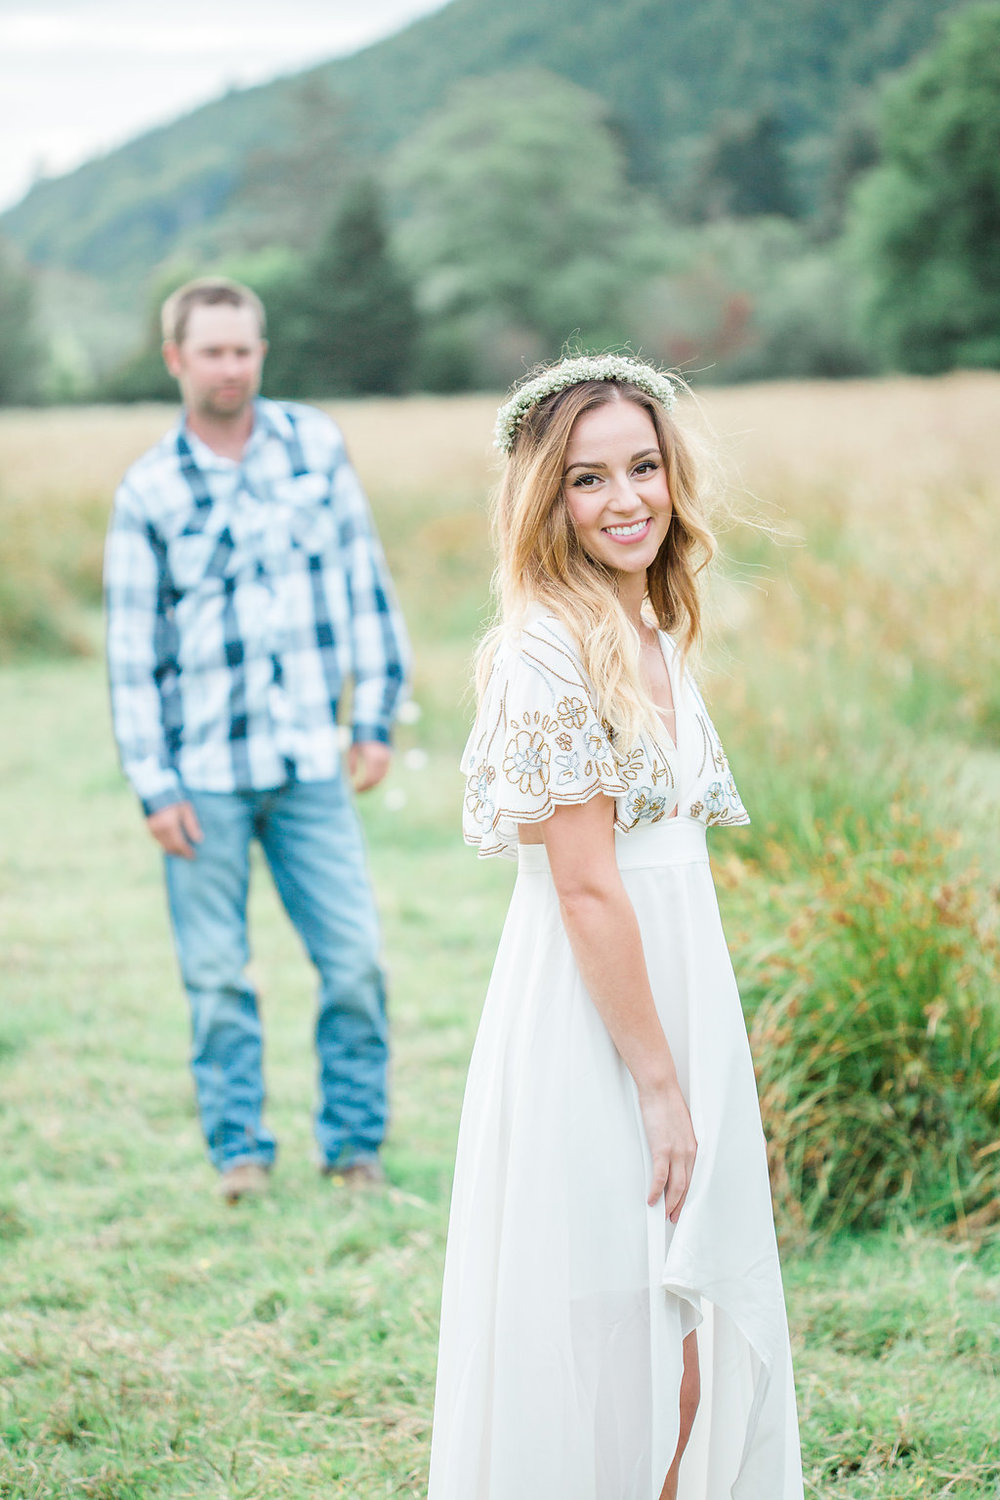 Beautiful outdoor engagement session | What to wear | Photo Inspiration | Engagement session | Portrait | White | Detail Shots | Mastin Labs | Engaged | Fuji 400 | Beautiful Couple | Couple in Love | Beautiful posing | Hair Piece for Photo Session | Etsy Headband